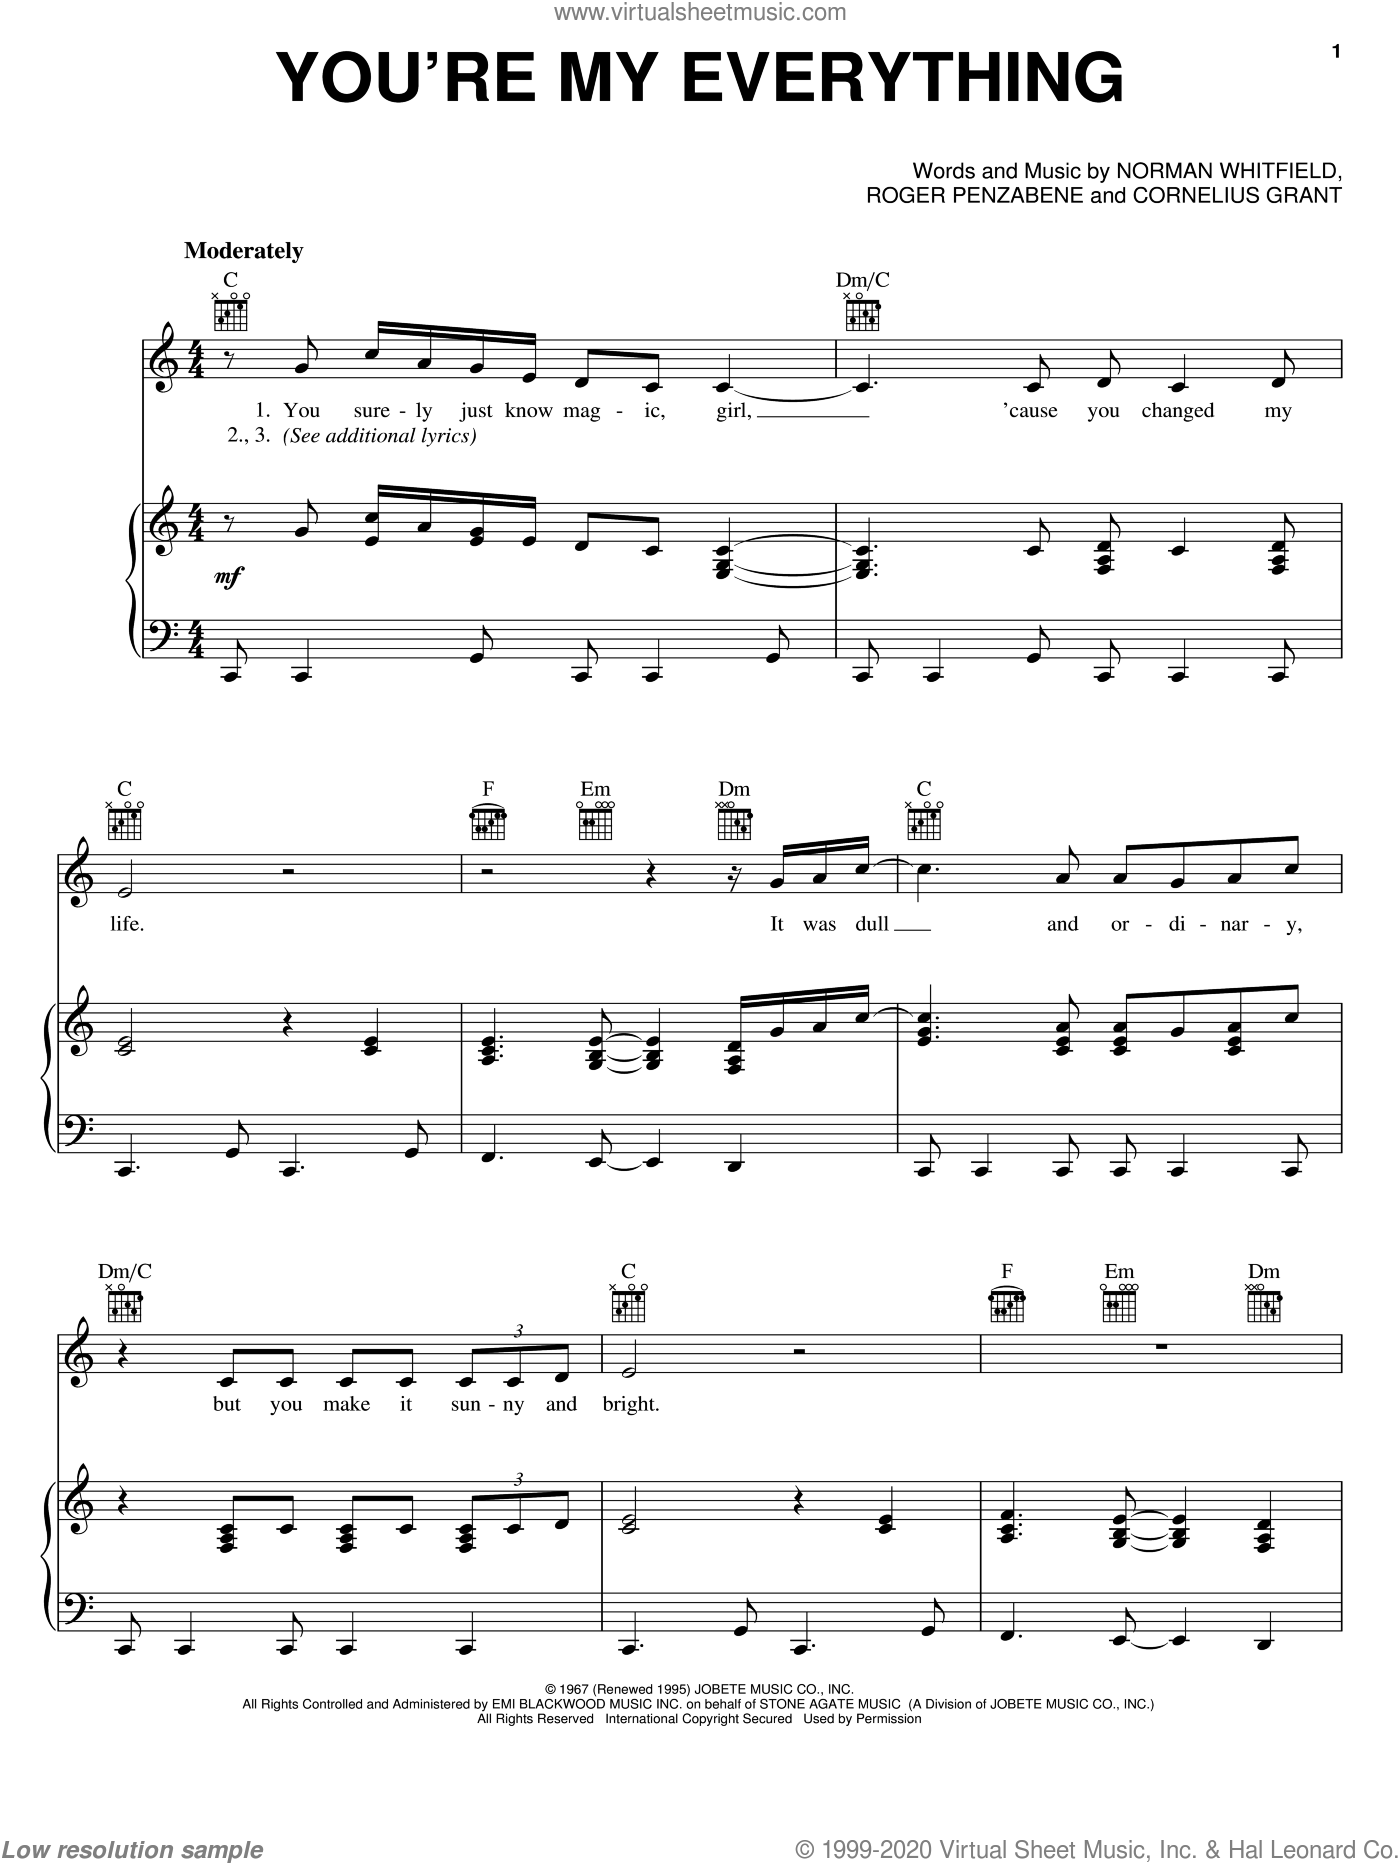 You're My Everything sheet music for voice, piano or guitar by Roger Penzabene, The Temptations, Cornelius Grant and Norman Whitfield. Score Image Preview.